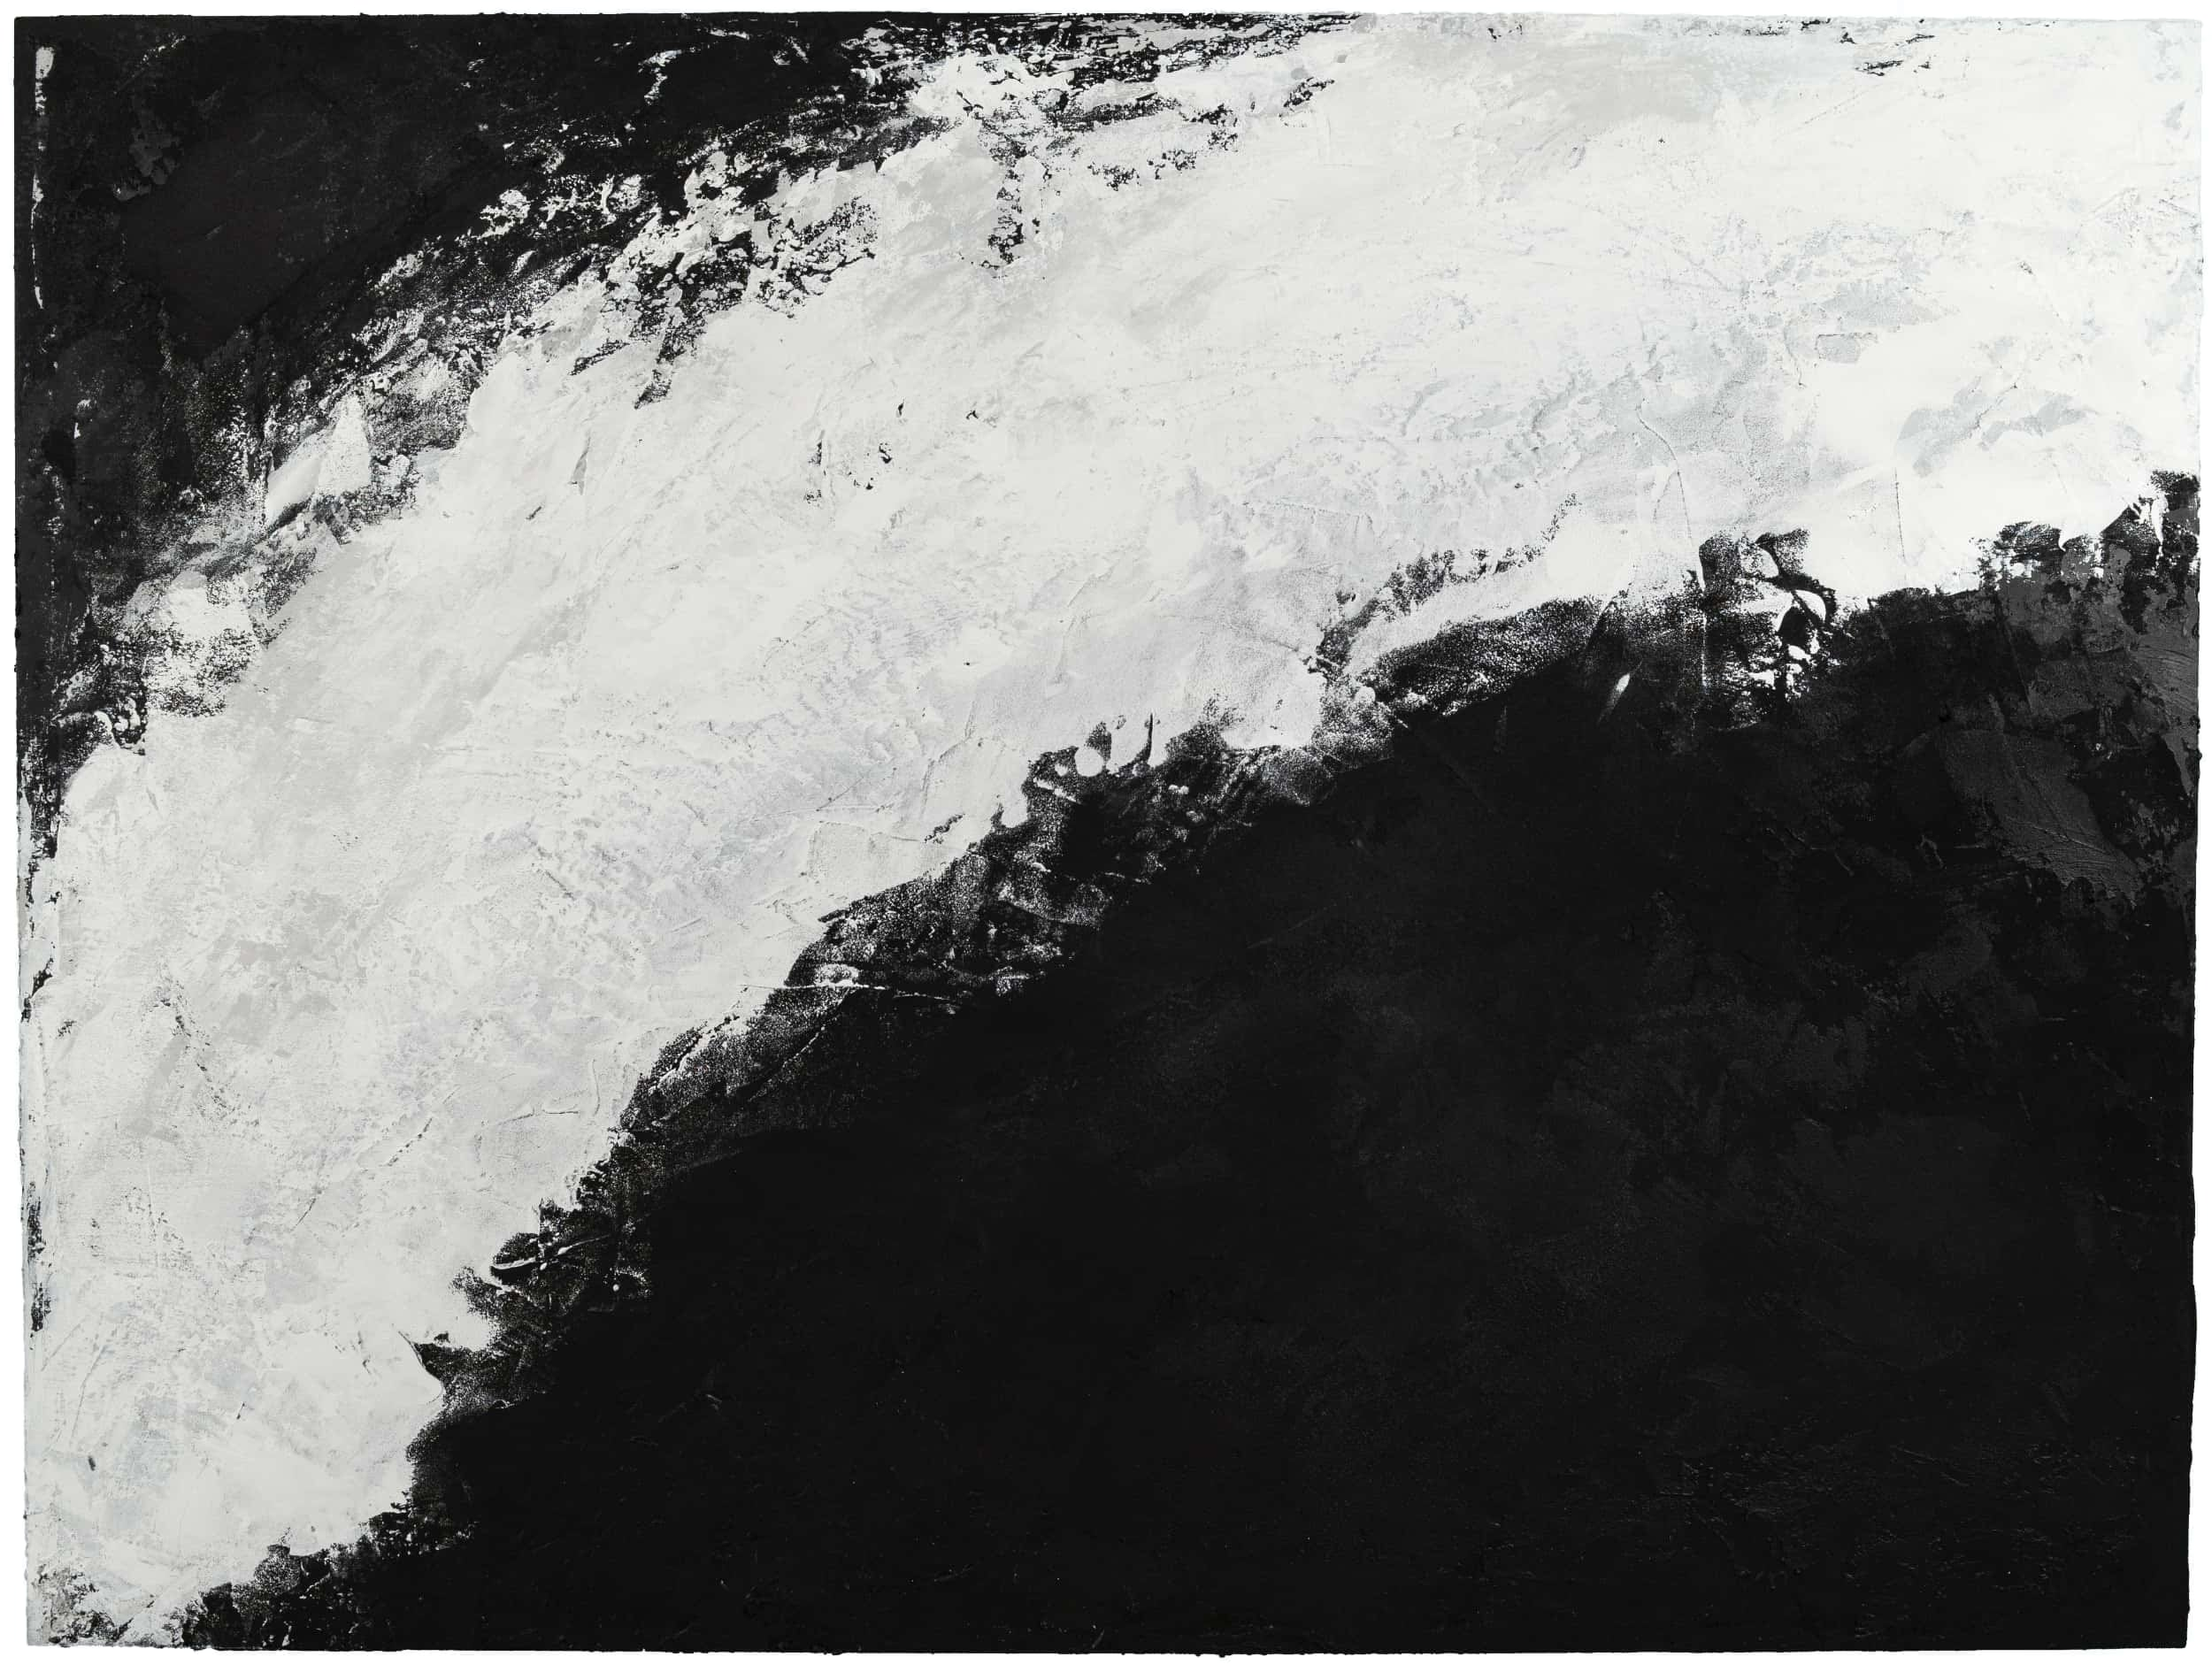 Accretion , 2019 Acrylic, pumice, black gesso on birch 36 × 48 in (91.4 × 121.9 cm)